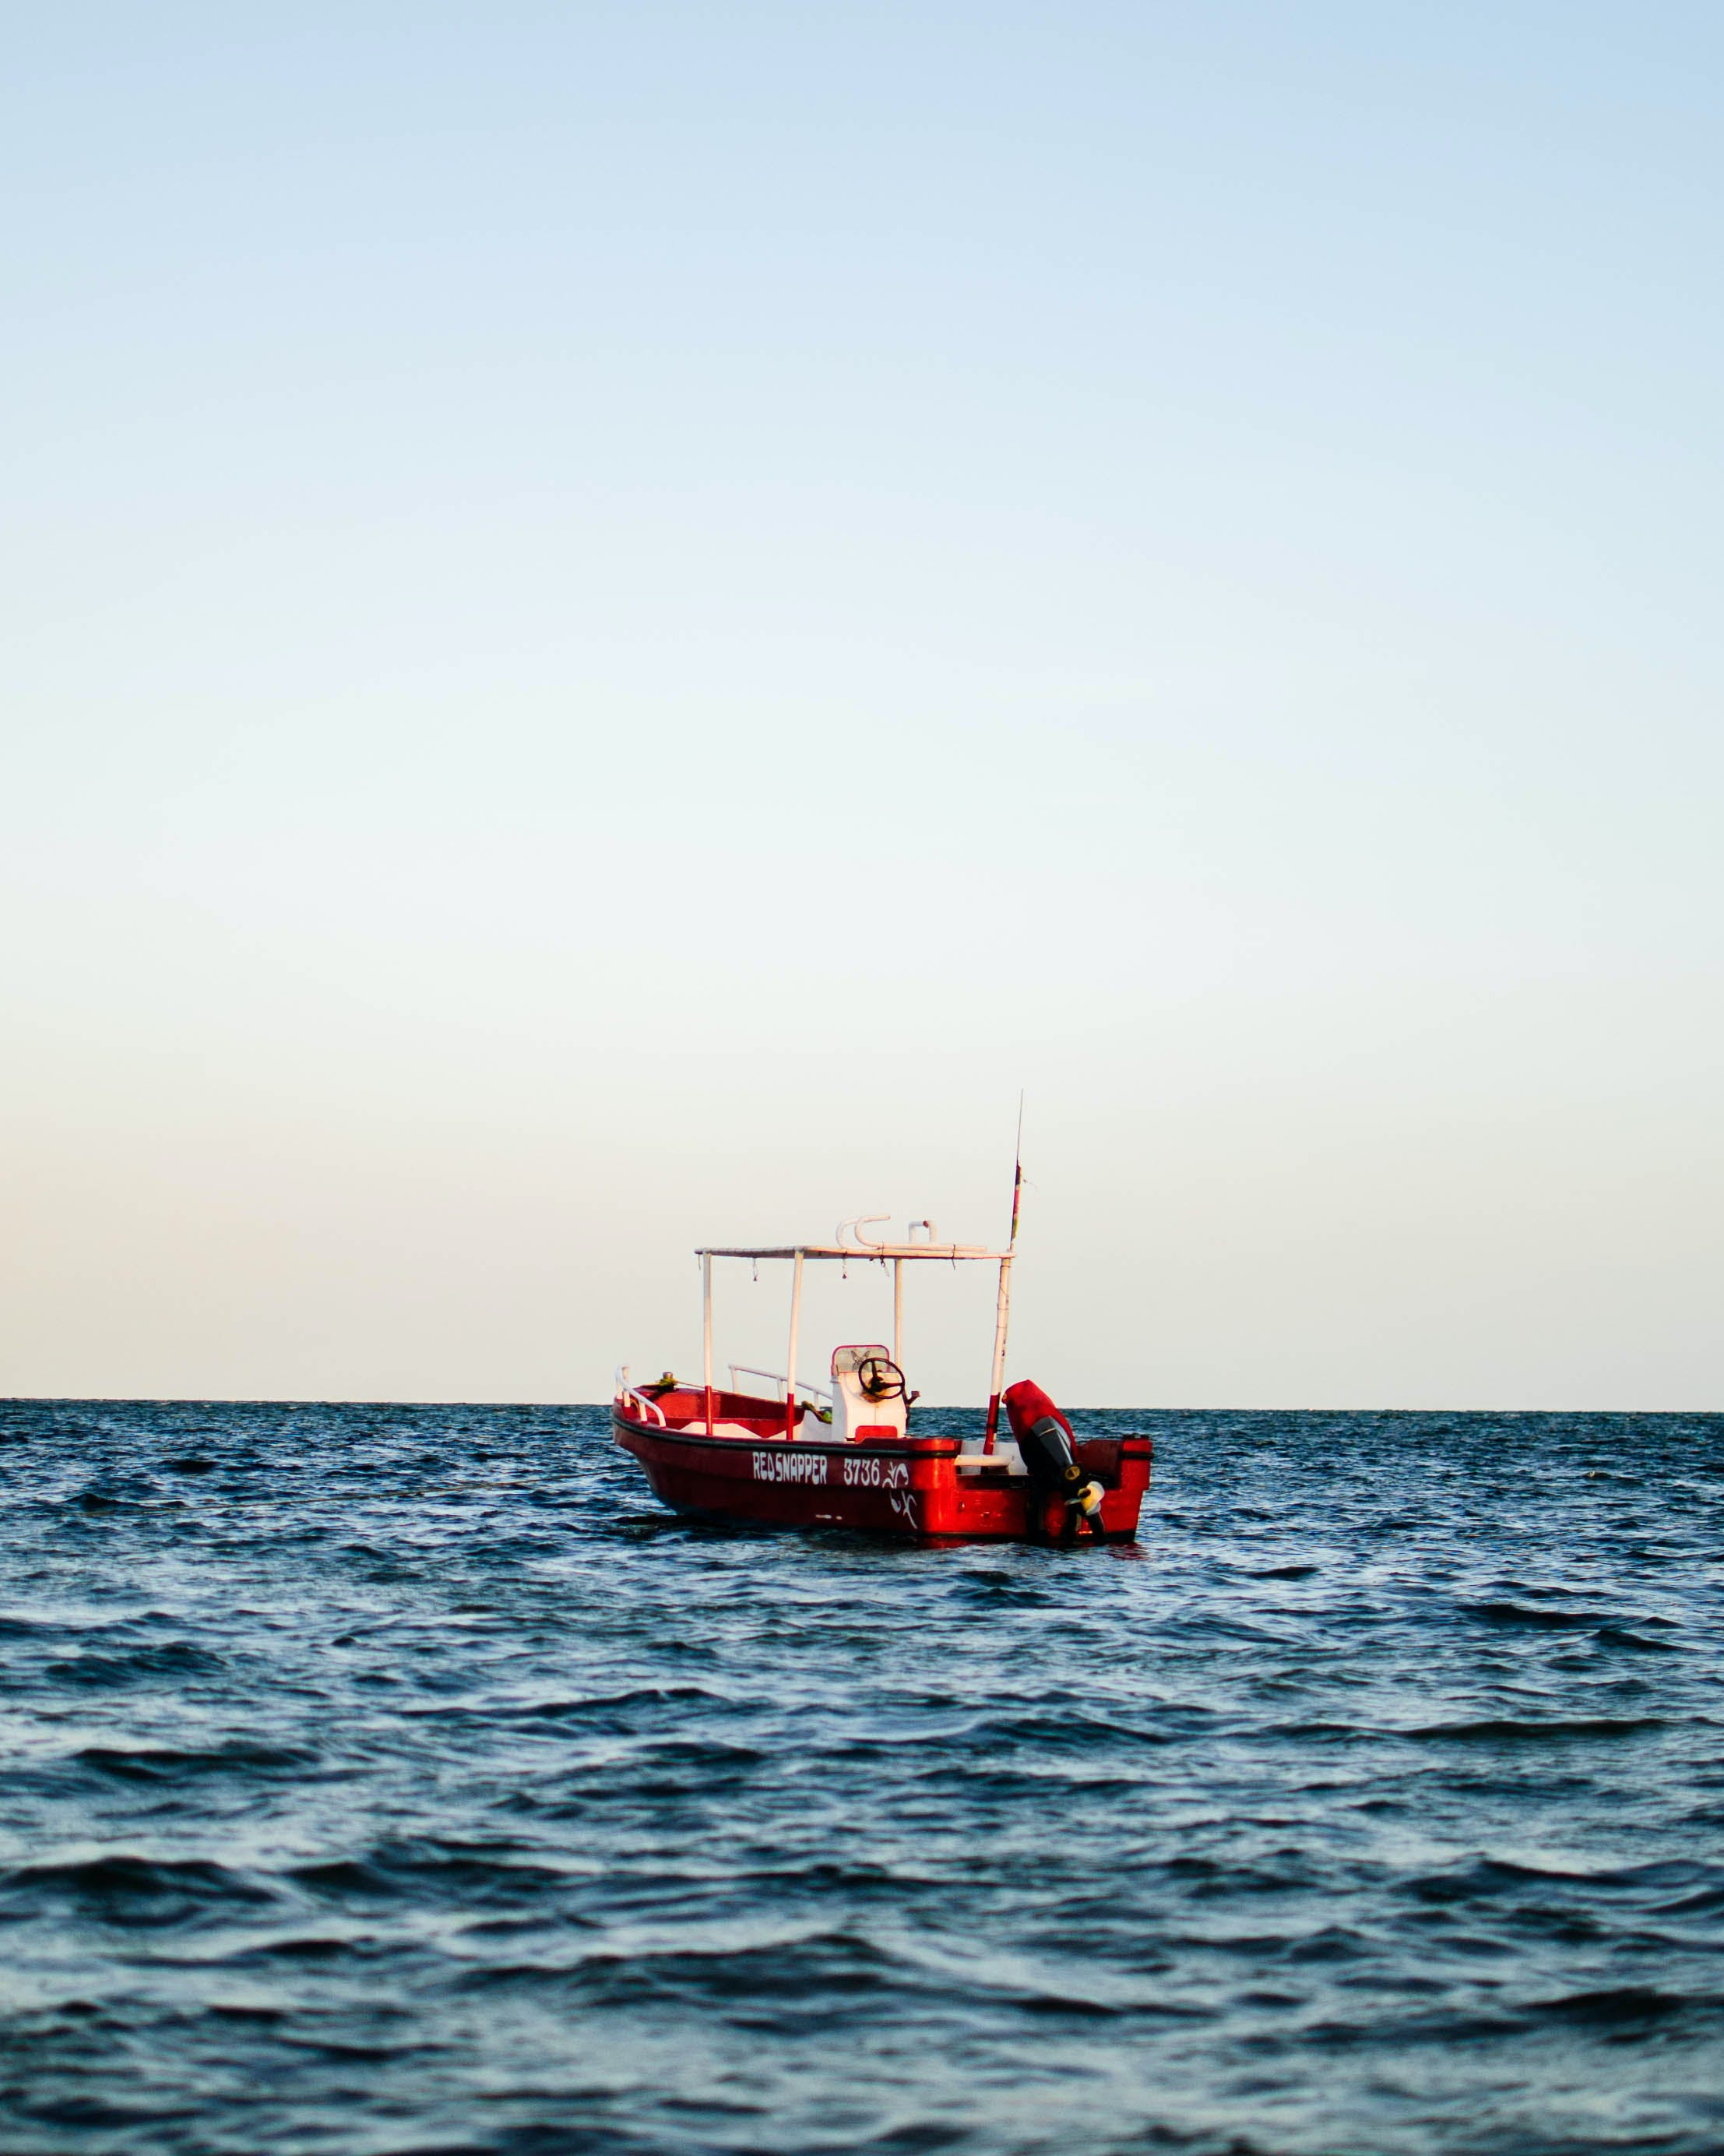 Red and White Boat on Body of Water